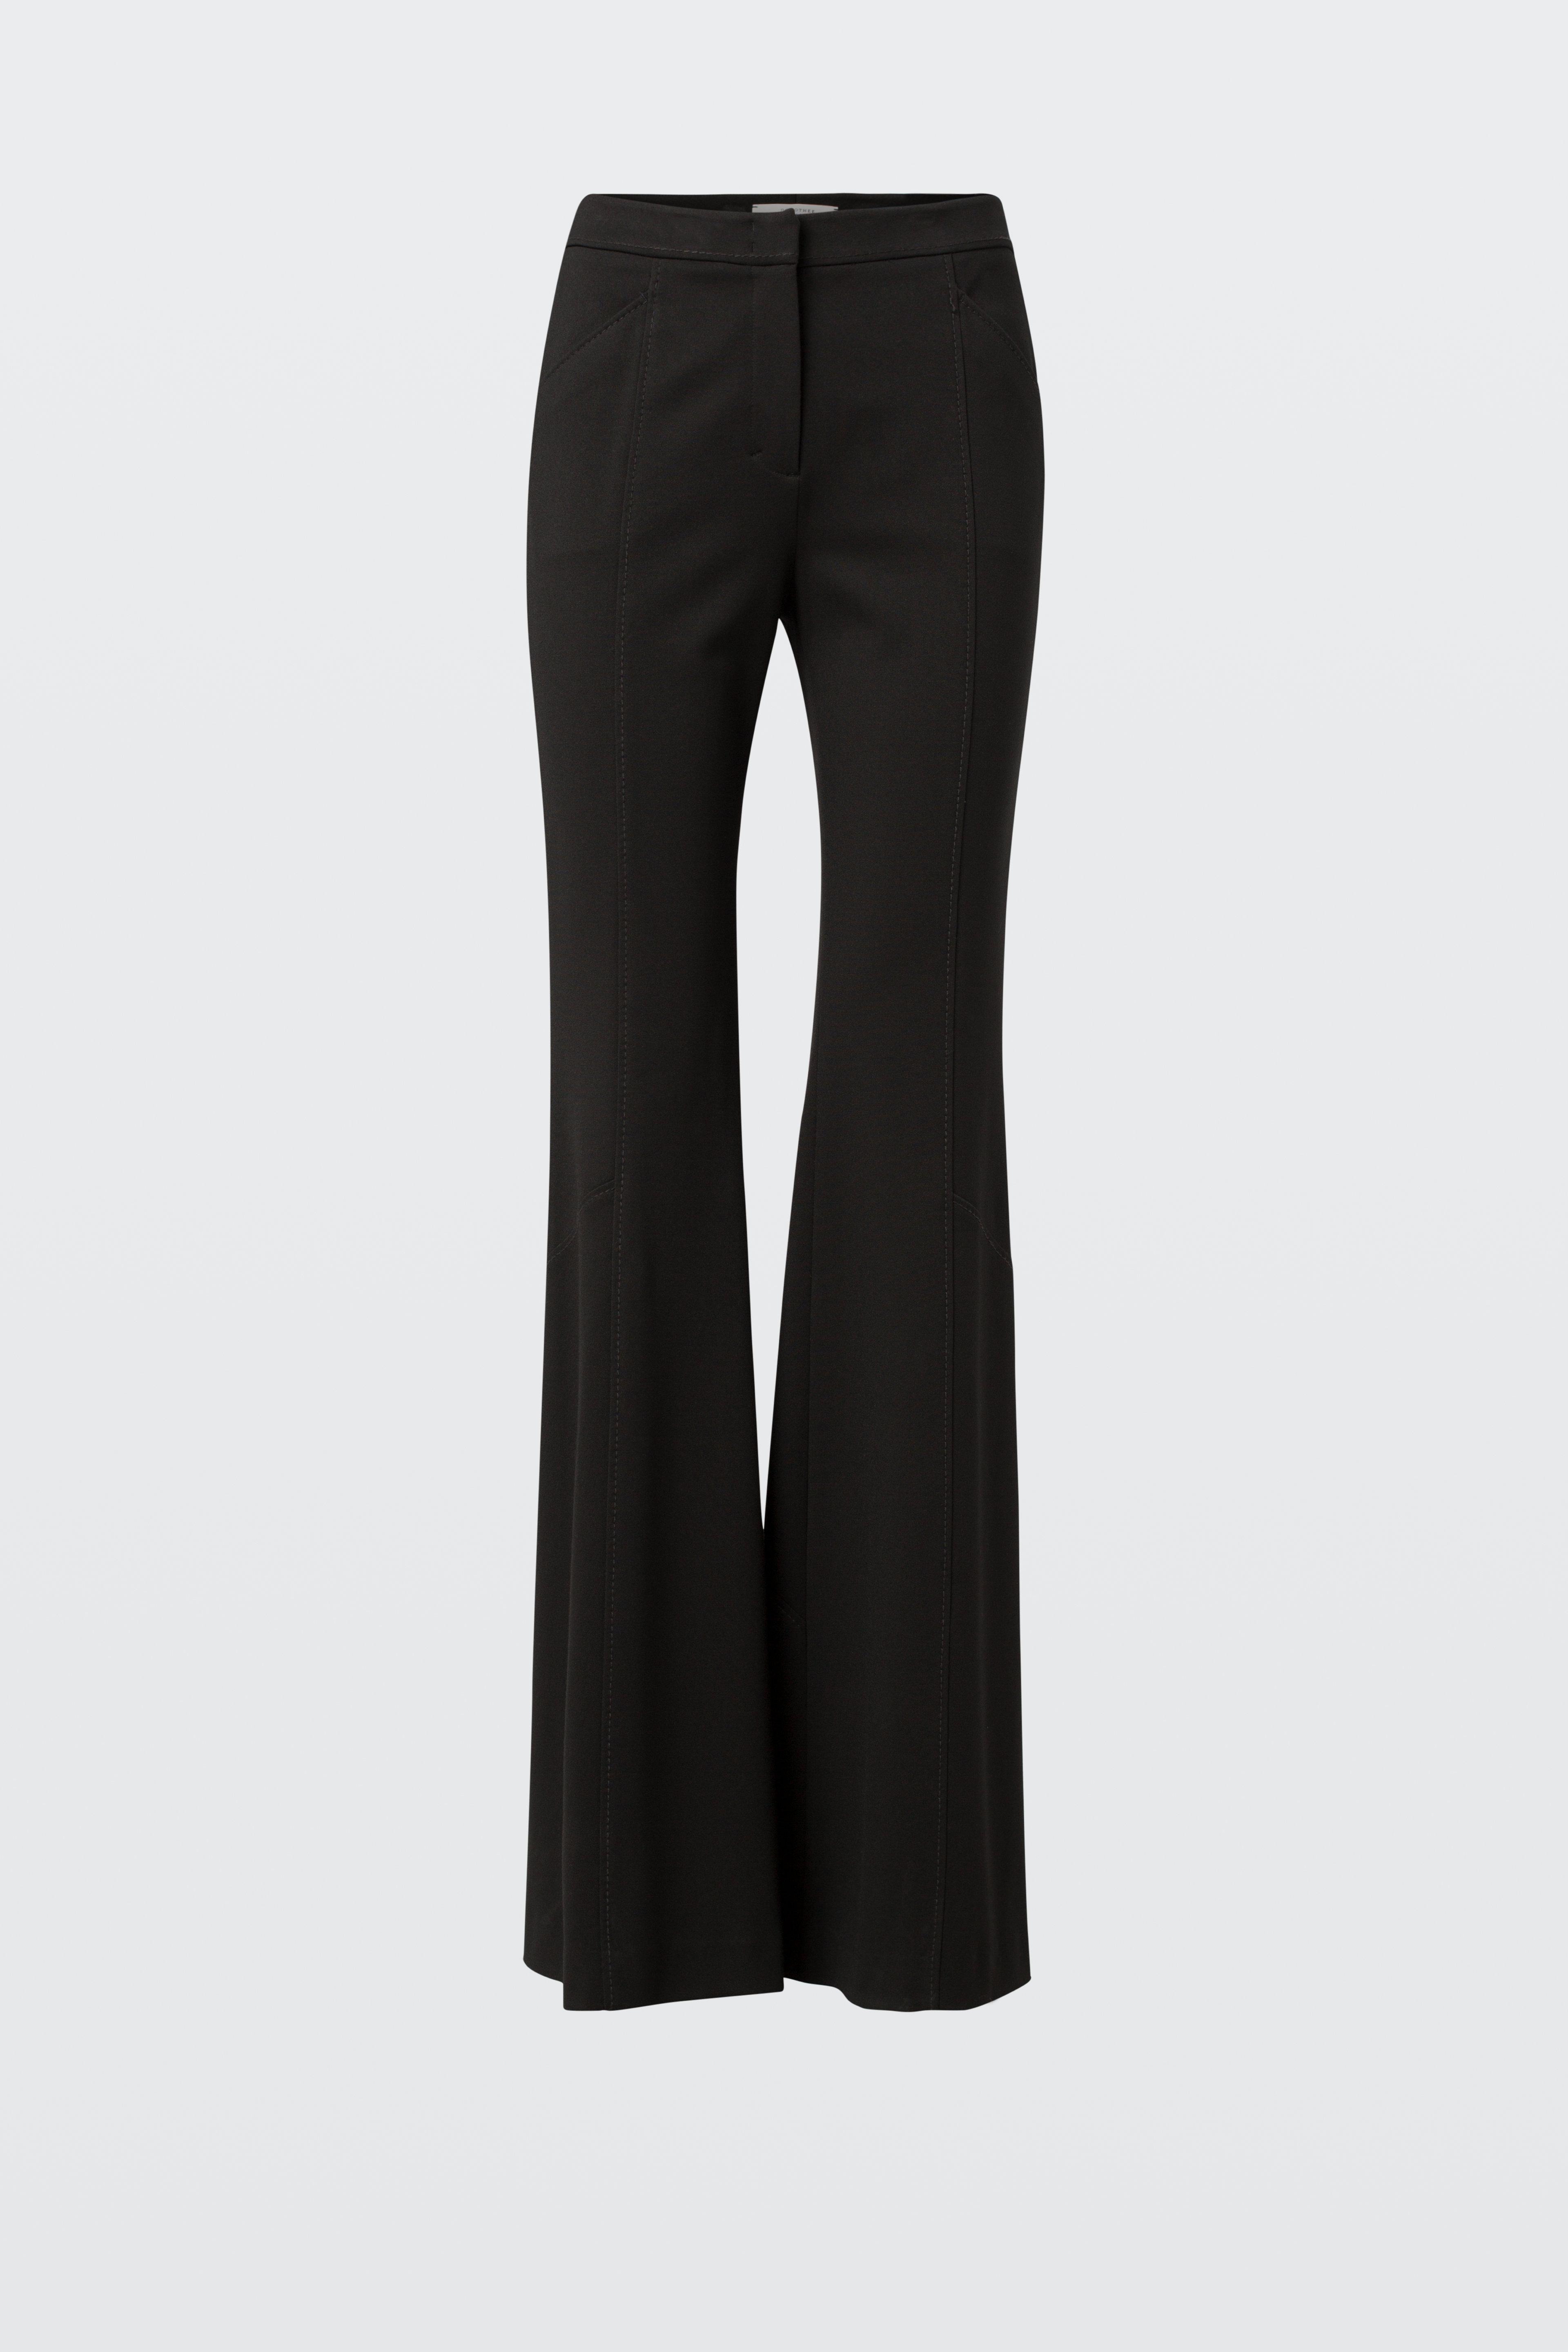 EFFORTLESS CHIC joggers-pants 2 Dorothee Schumacher Cheap 2018 Unisex qN2tw